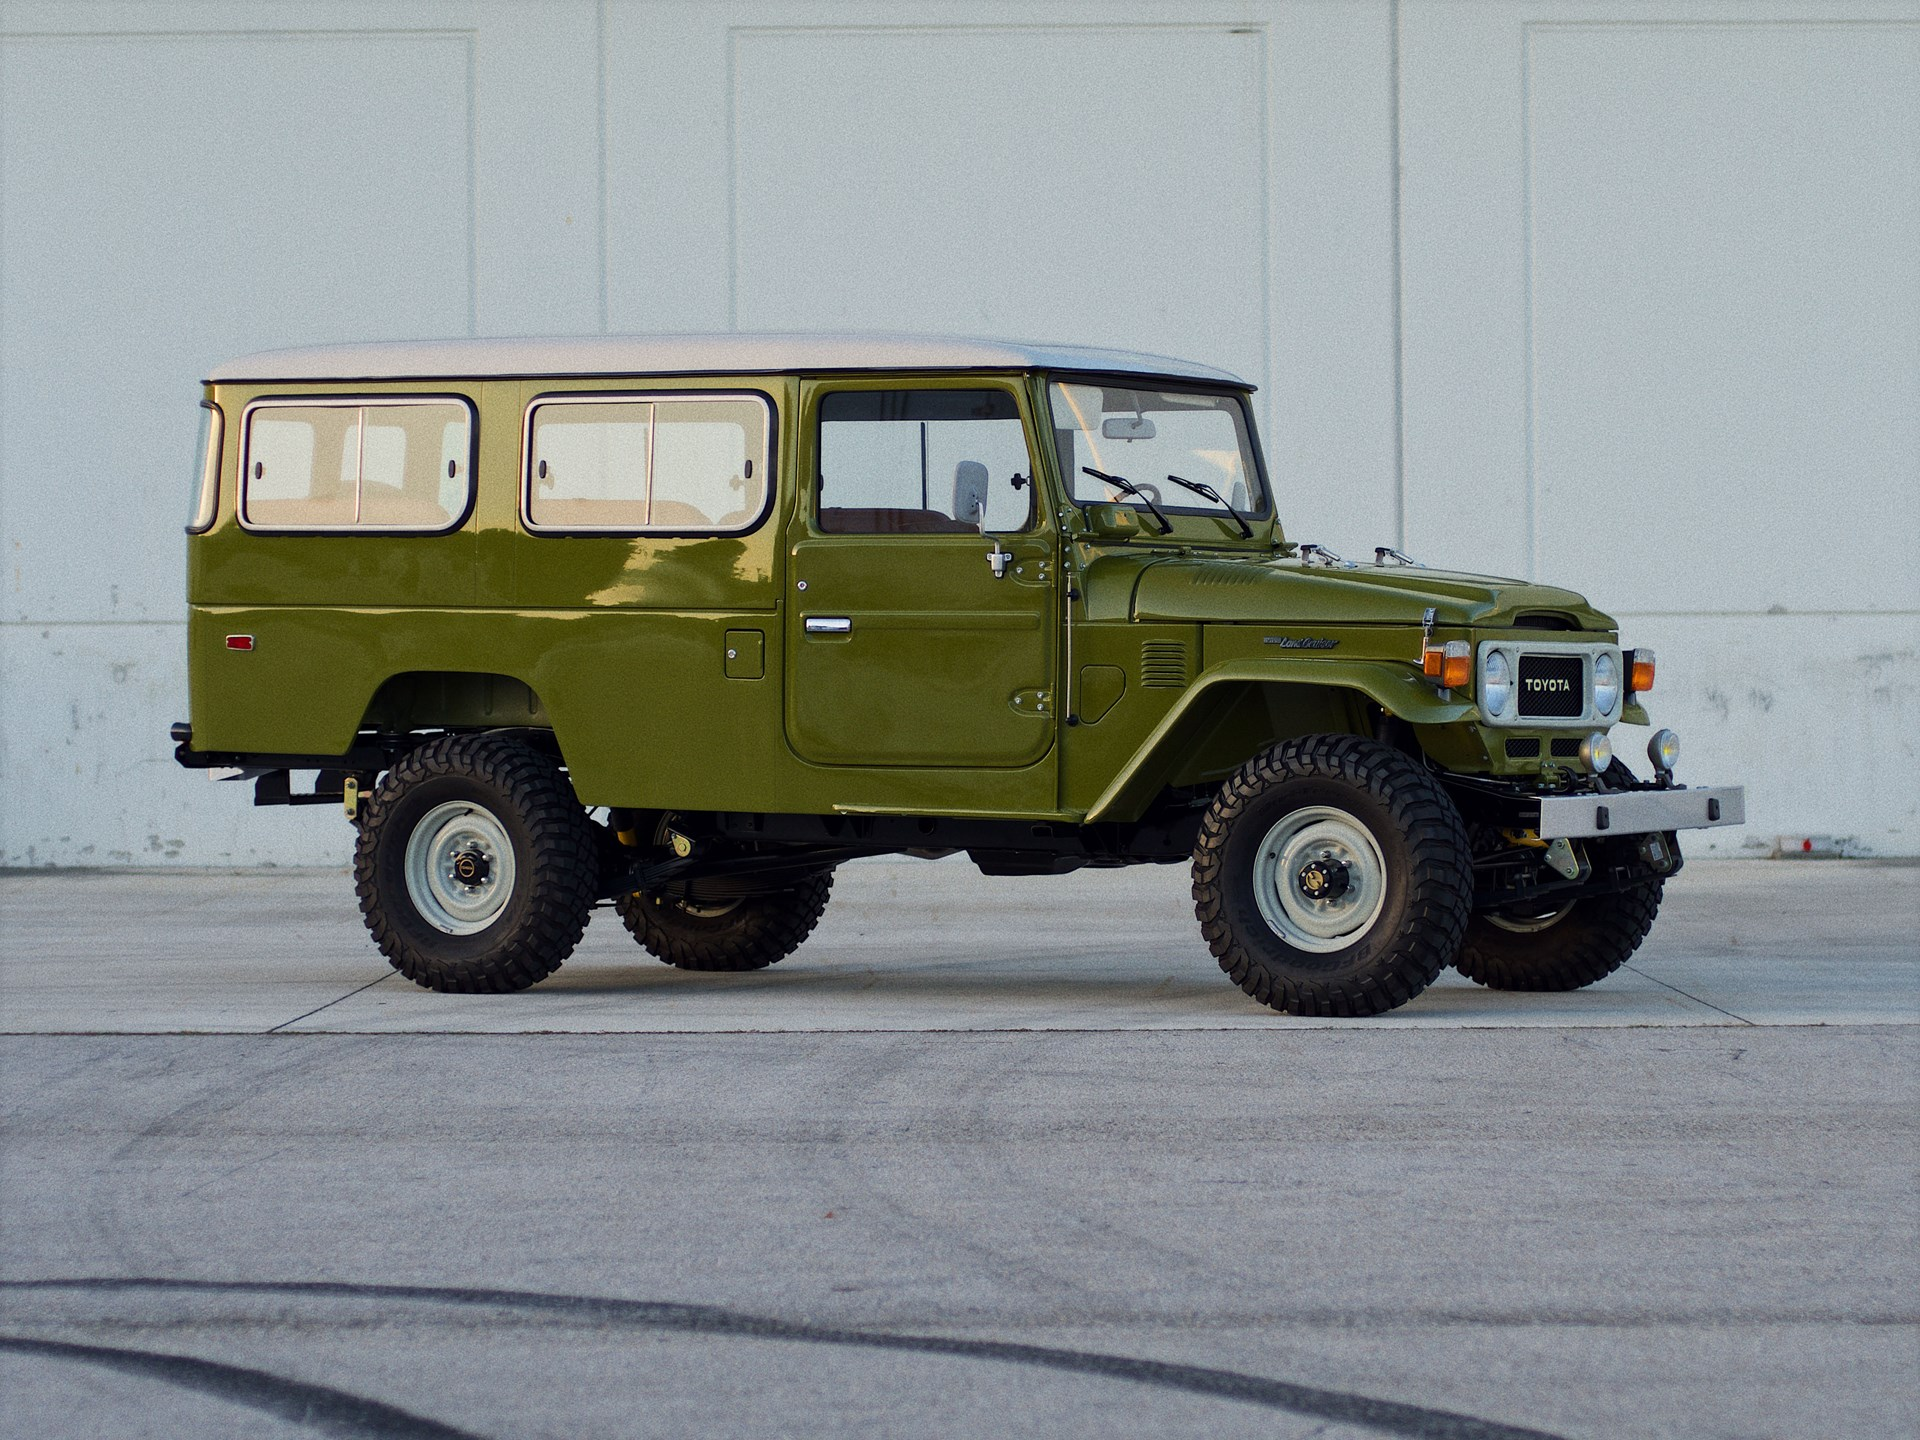 1982 Toyota FJ45 Land Cruiser 'Troopy' sold for $50,600